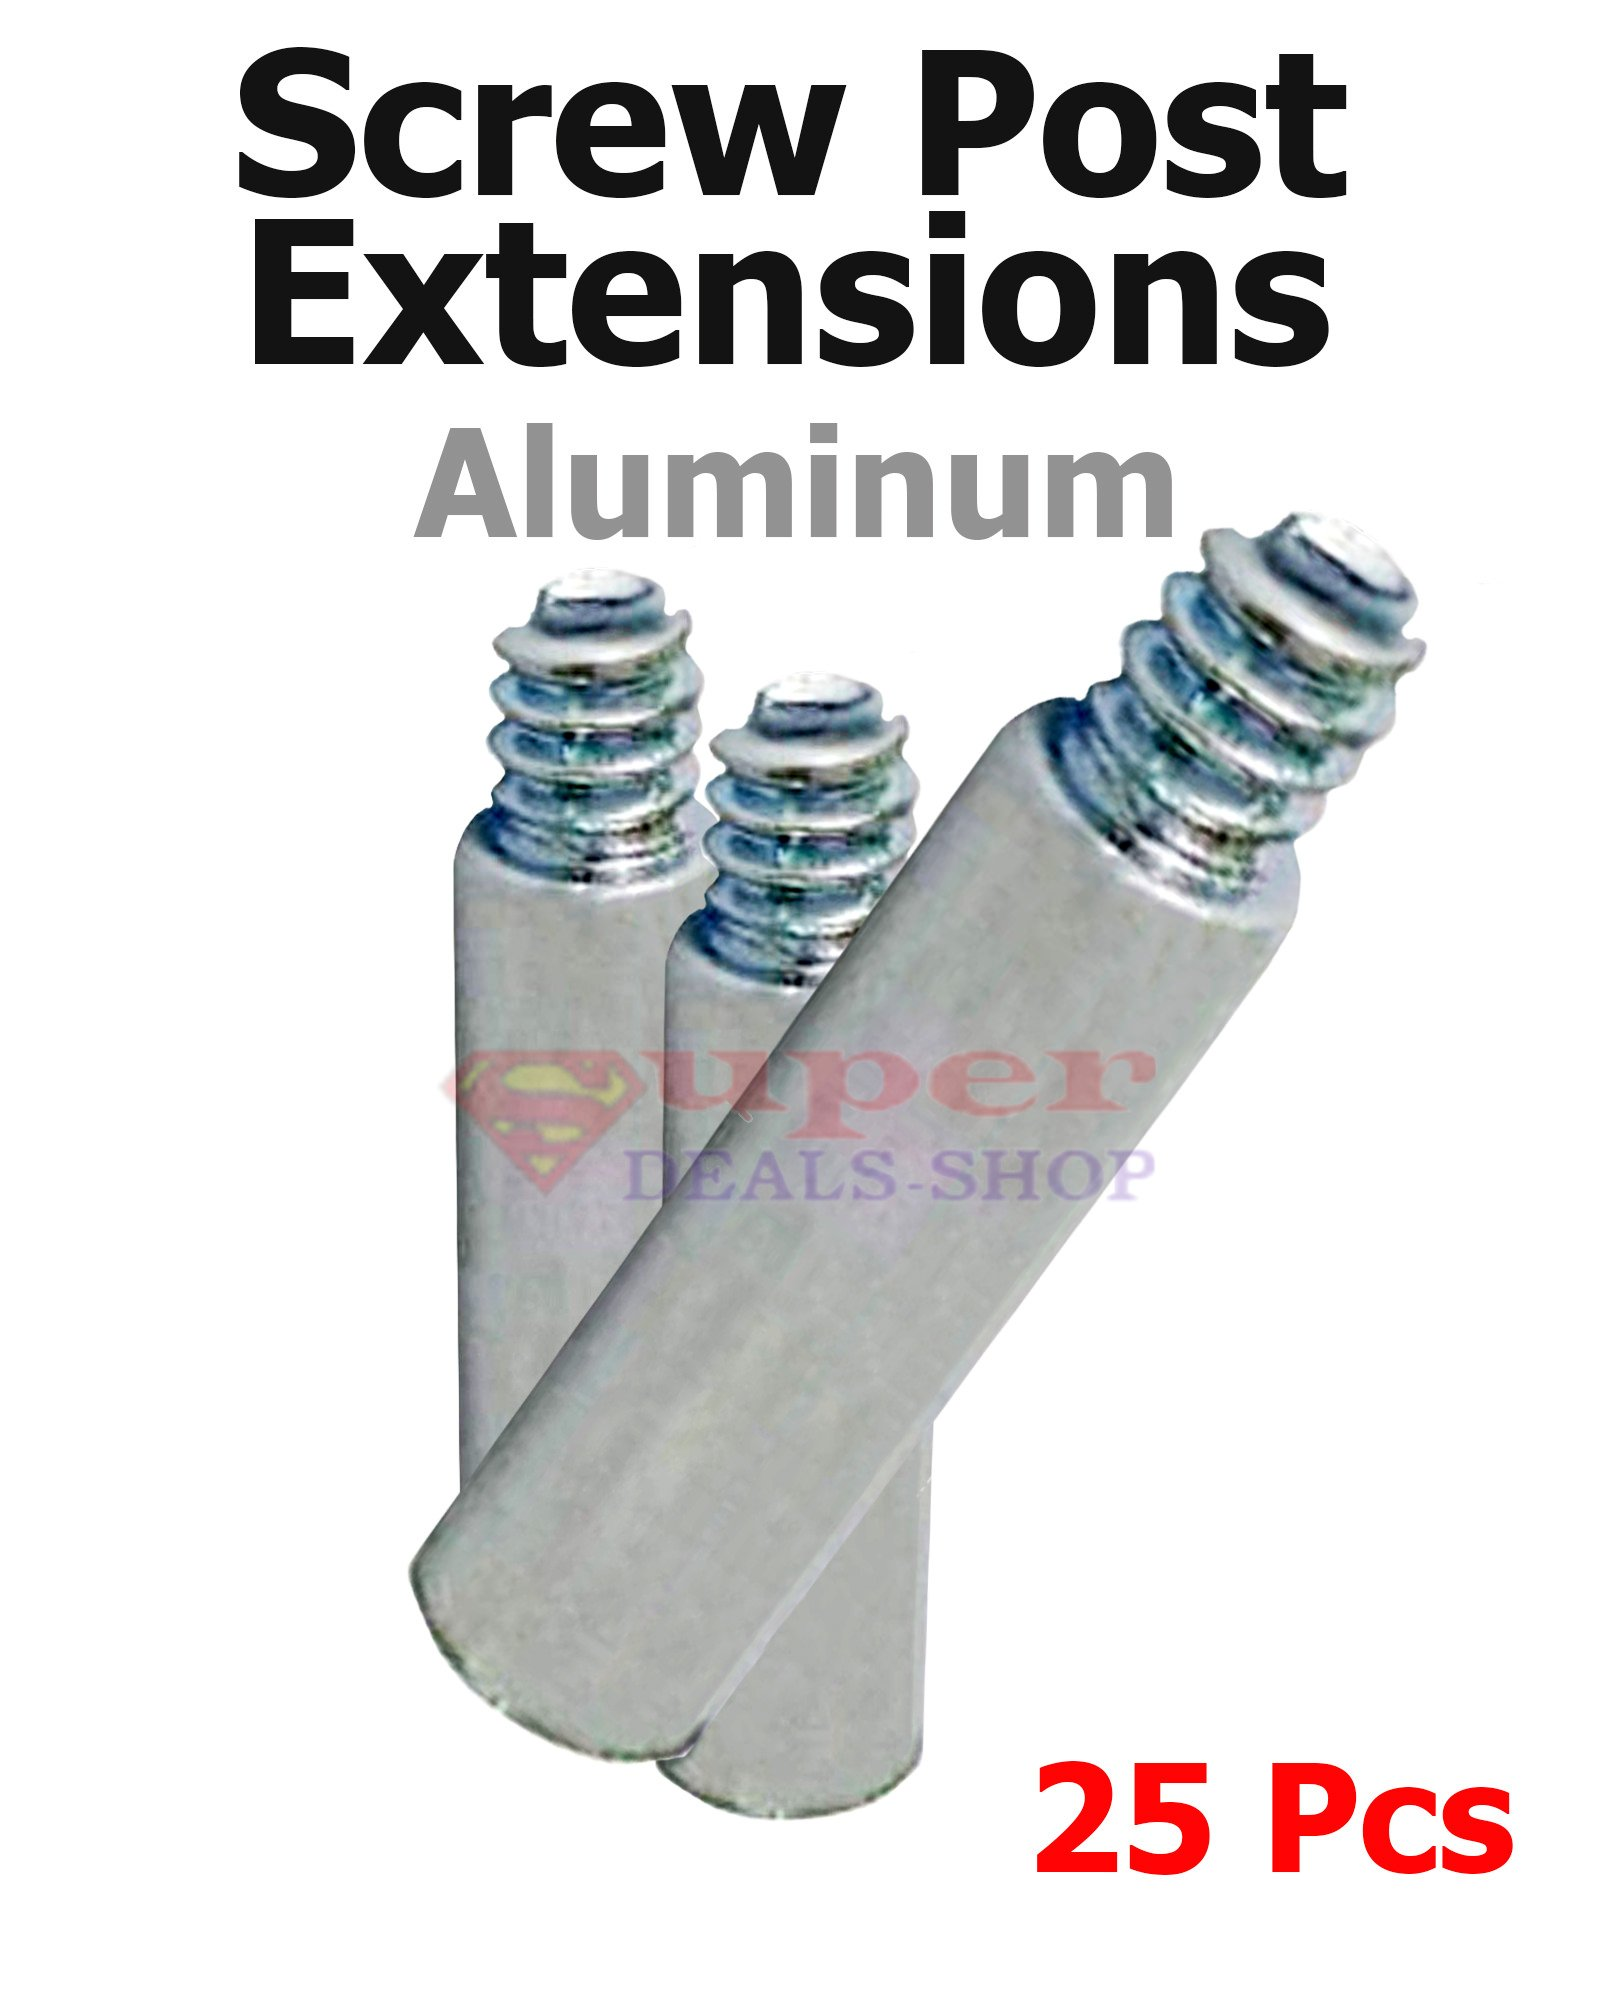 25 Pcs #8-32X1 Aluminum Screw Post Extensions/Additional Book Documet Album Binding Posts/Chicago Screws Binding Post Super-Deals-Shop